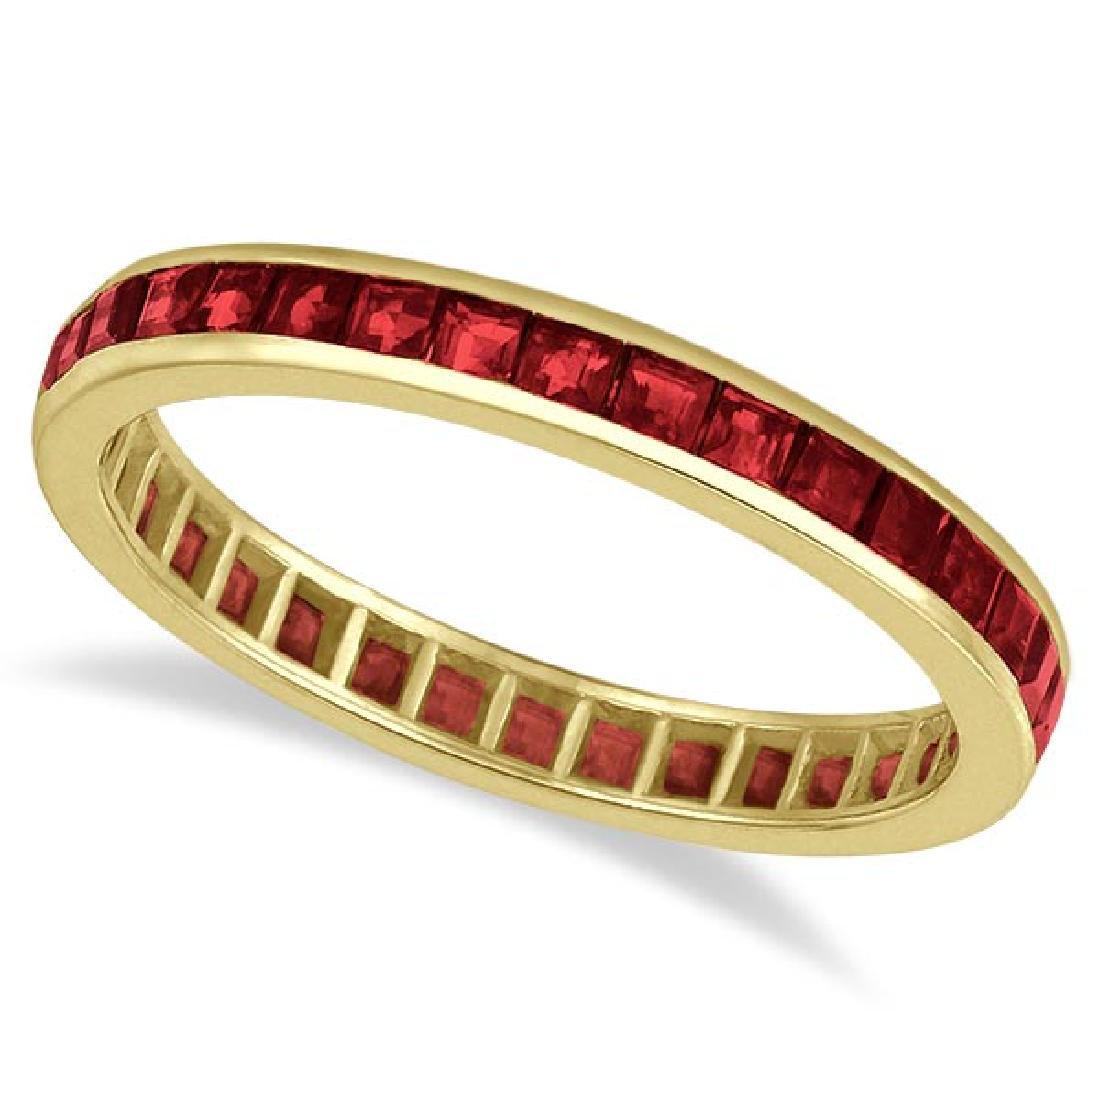 Princess-Cut Garnet Eternity Ring Band 14k Yellow Gold